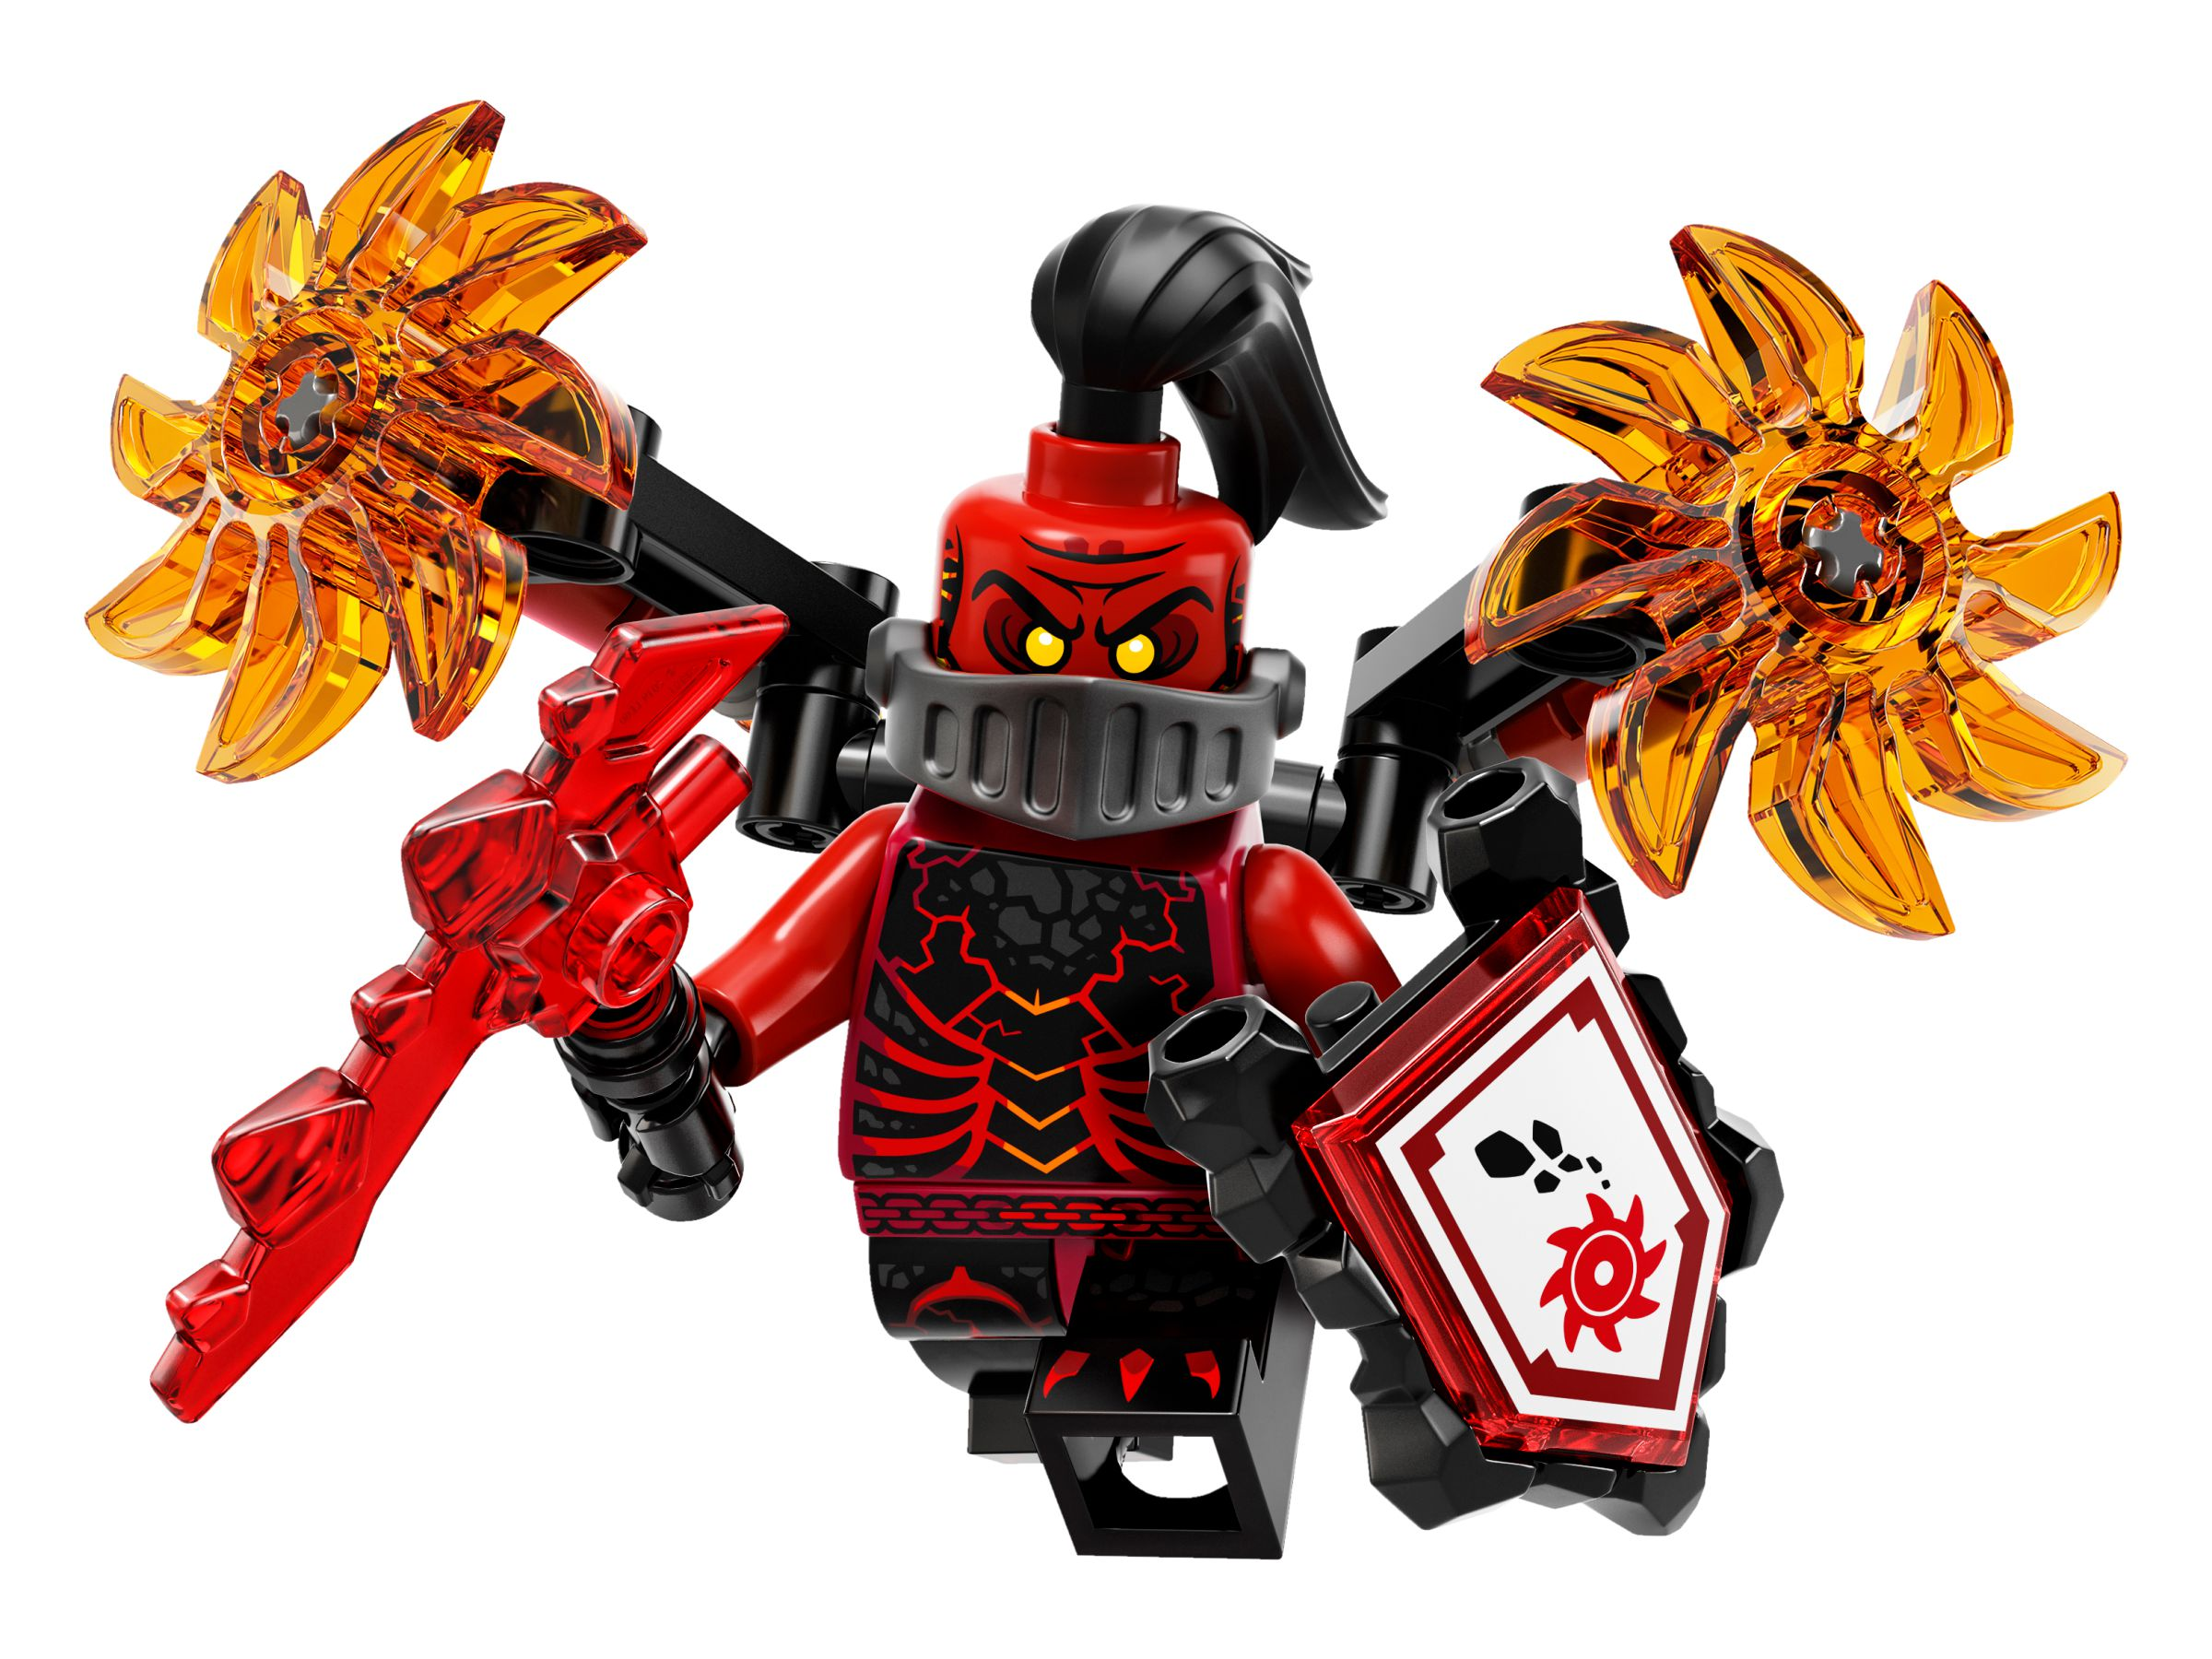 LEGO Nexo Knights 70338 Ultimativer General Magmar LEGO_70338_alt2.jpg